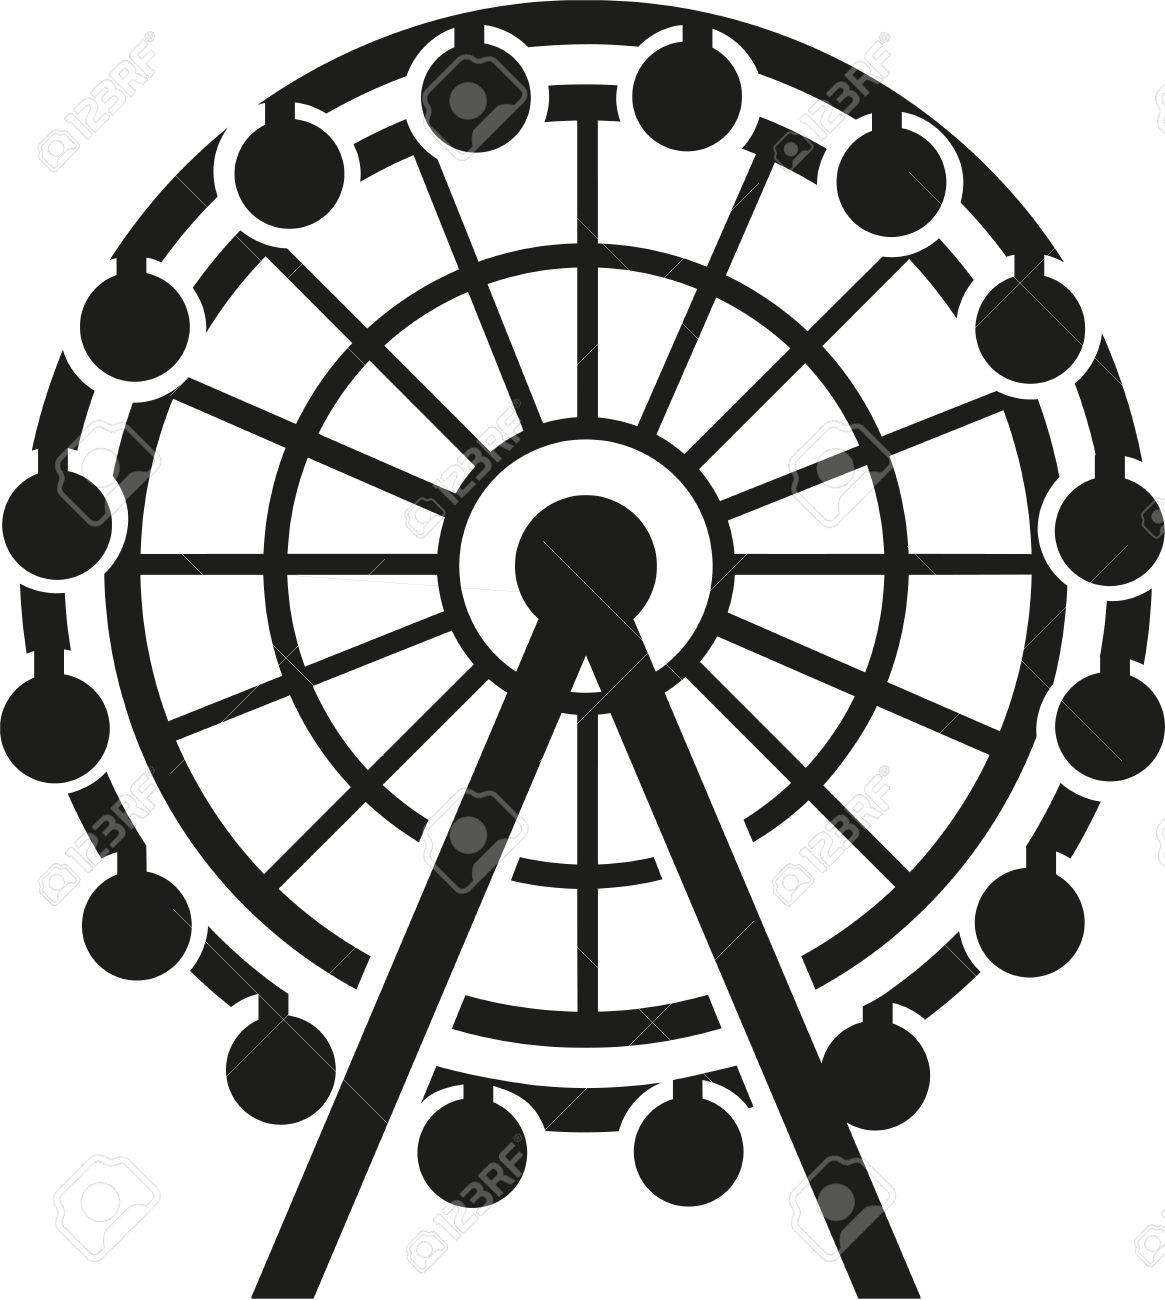 Ferris wheel icon royalty free cliparts vectors and stock ferris wheel icon stock vector 68125639 biocorpaavc